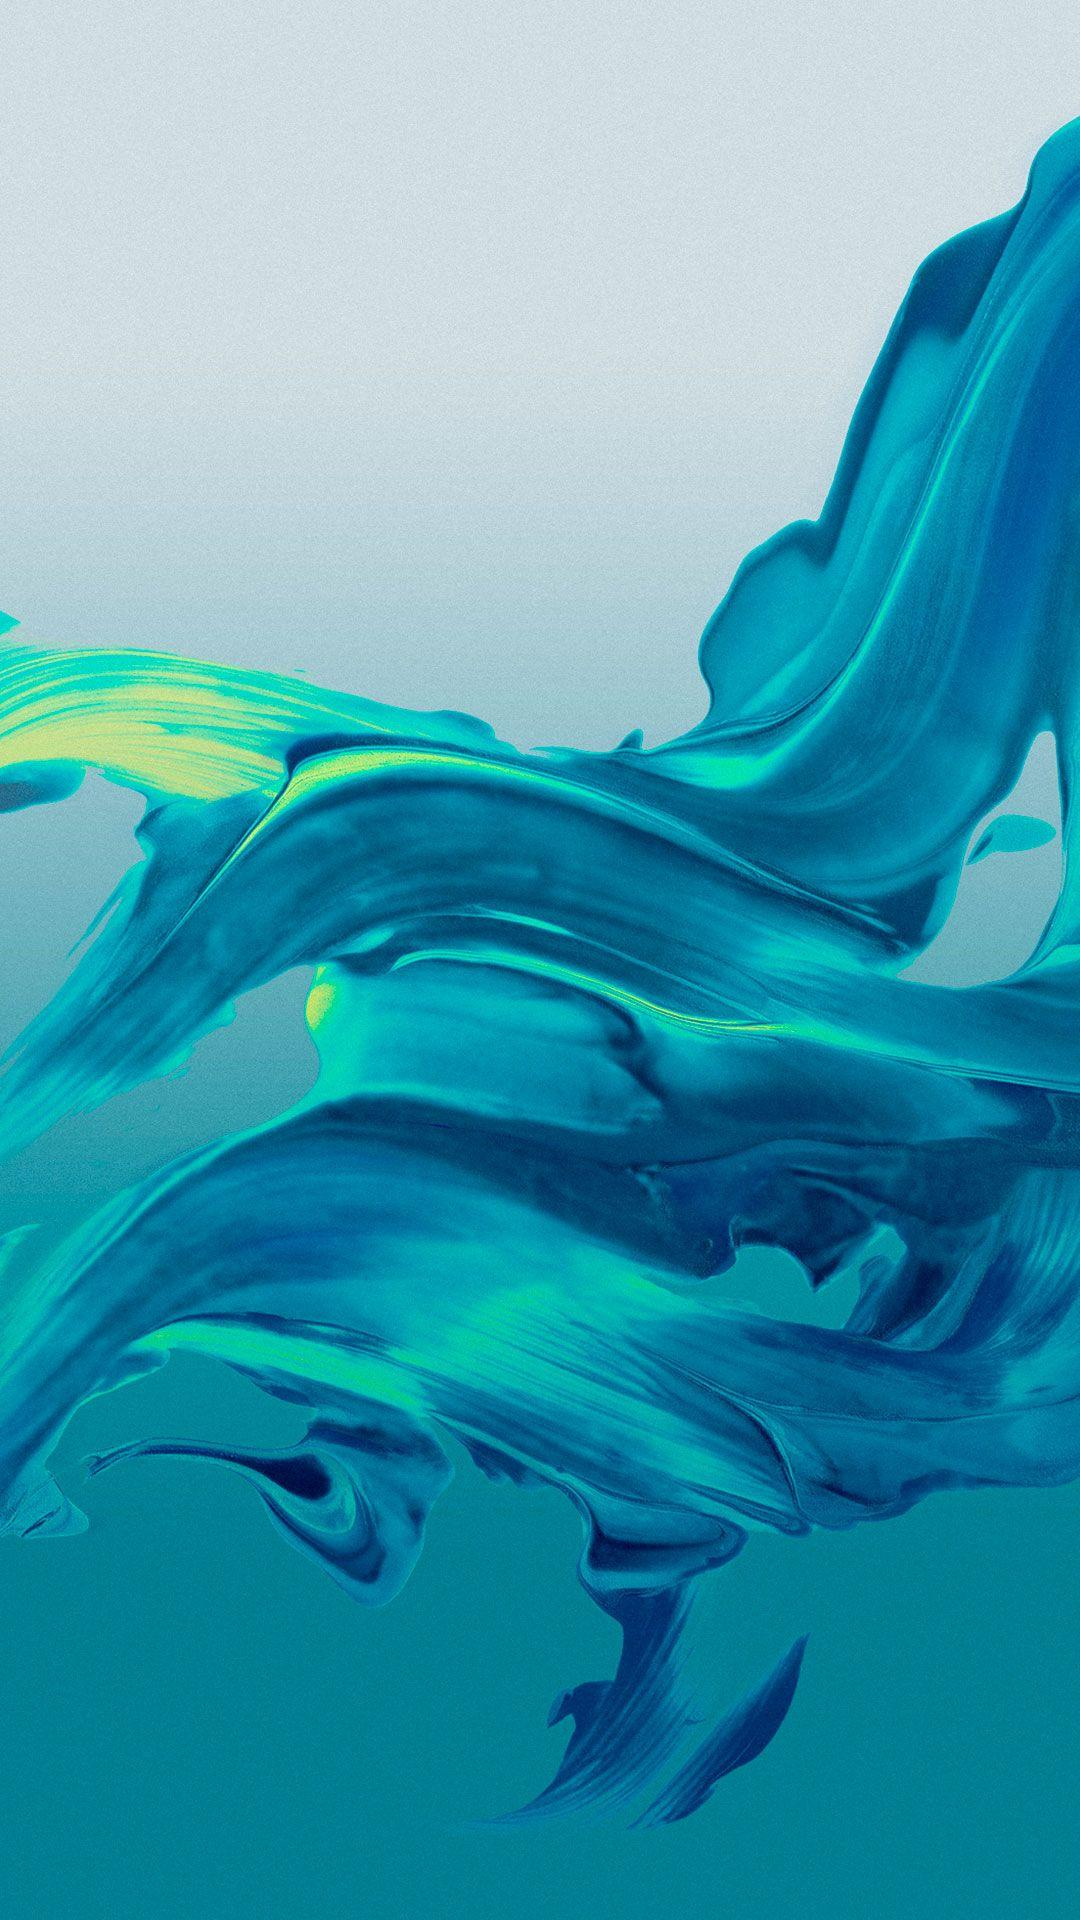 Abstract Fluid Wallpapers Wallpaper Cave